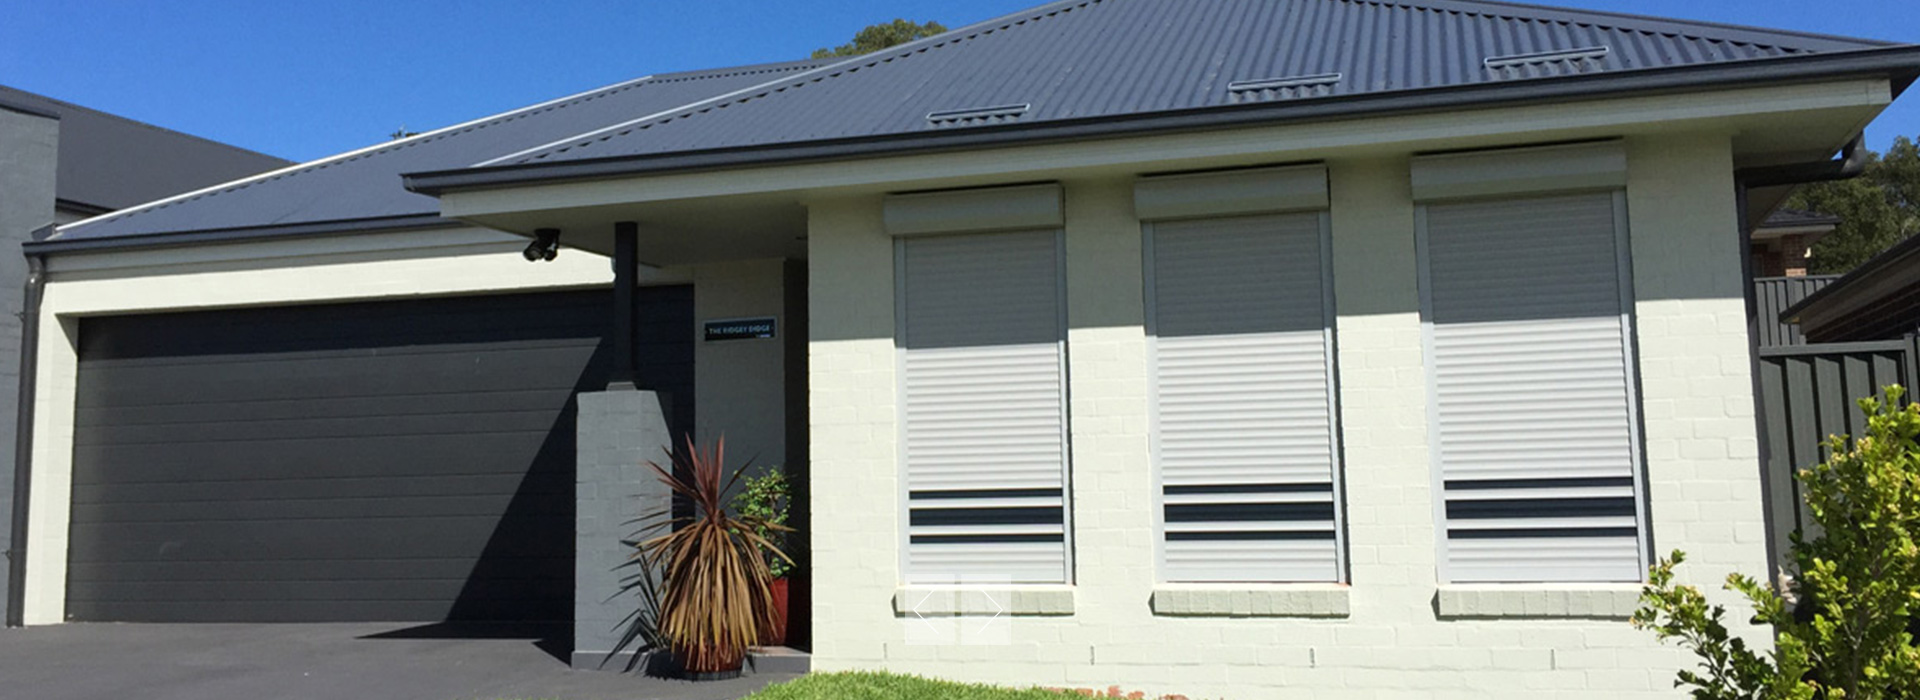 Bushfire Rated Roller Shutters Chatswood